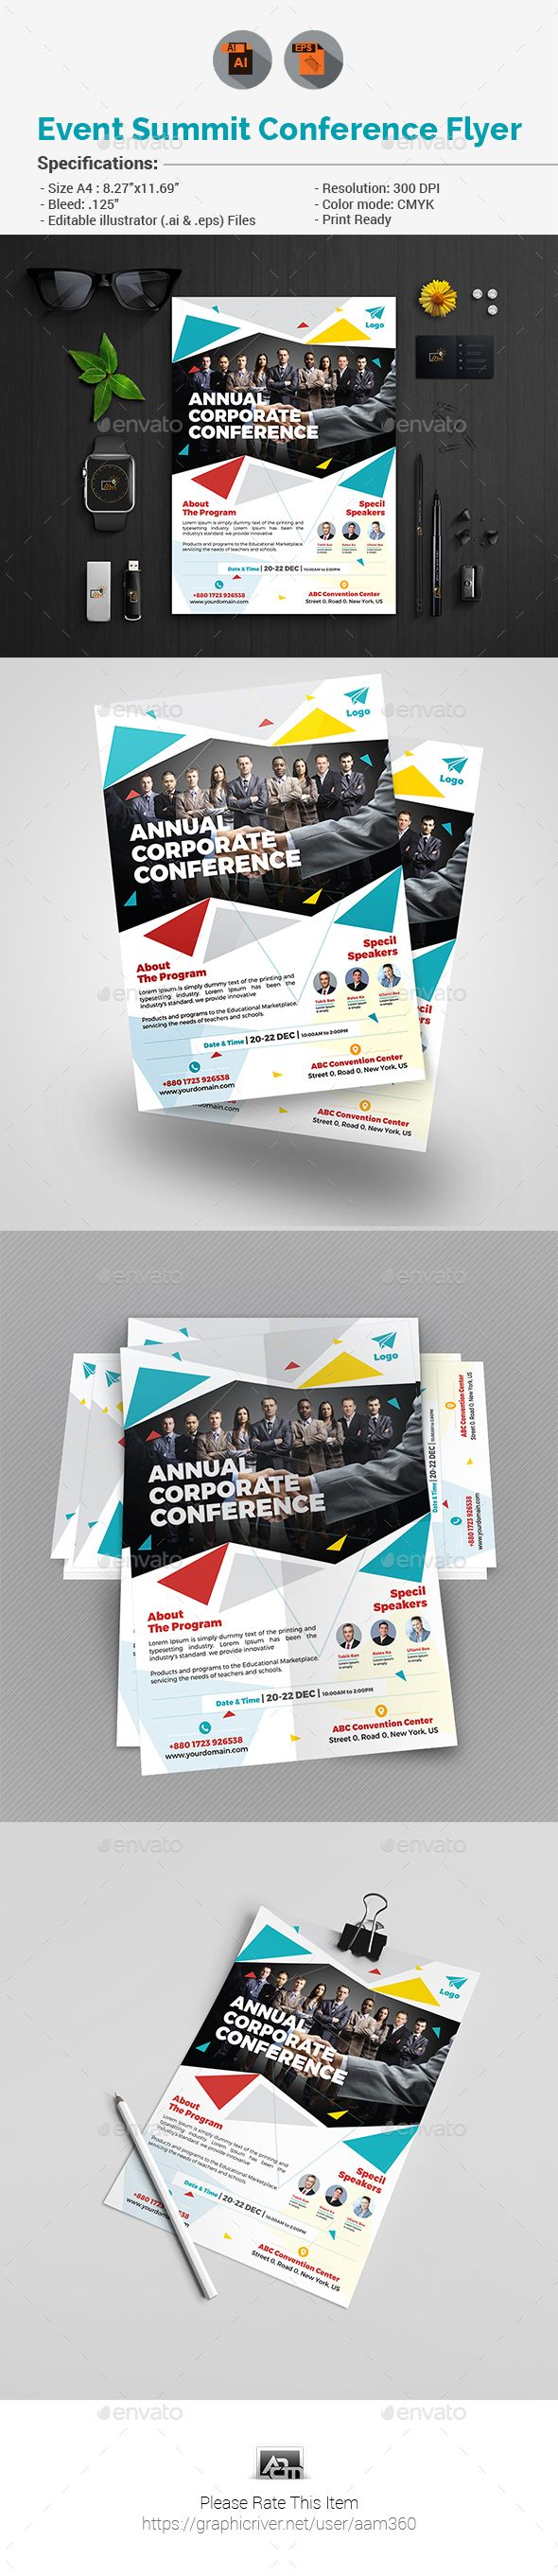 Event Summit Conference Flyer  Ai Illustrator Flyer Template And